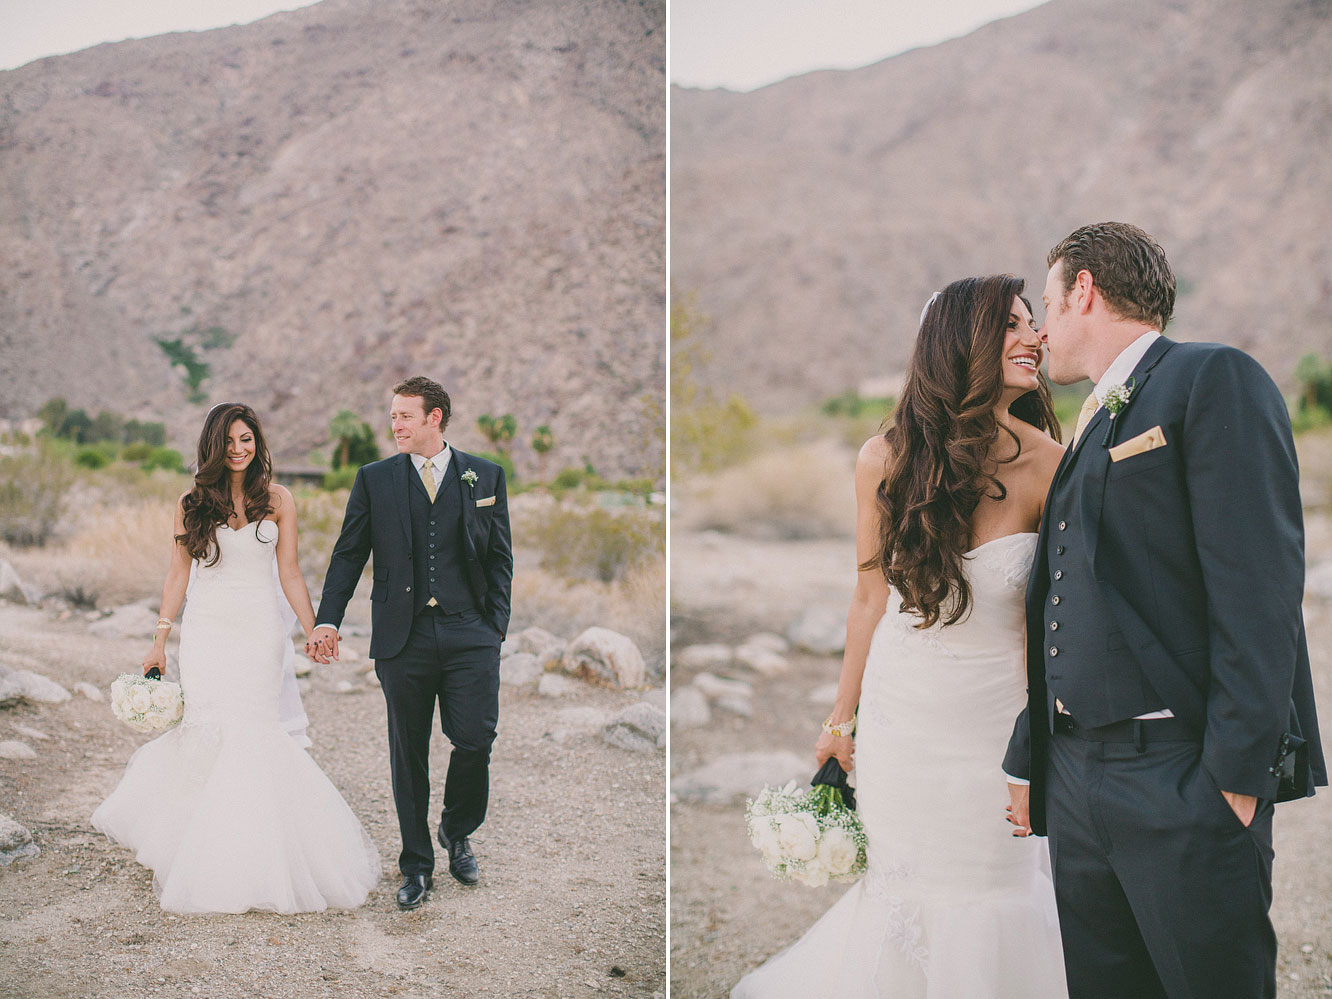 viceroy-palm-springs-wedding-23